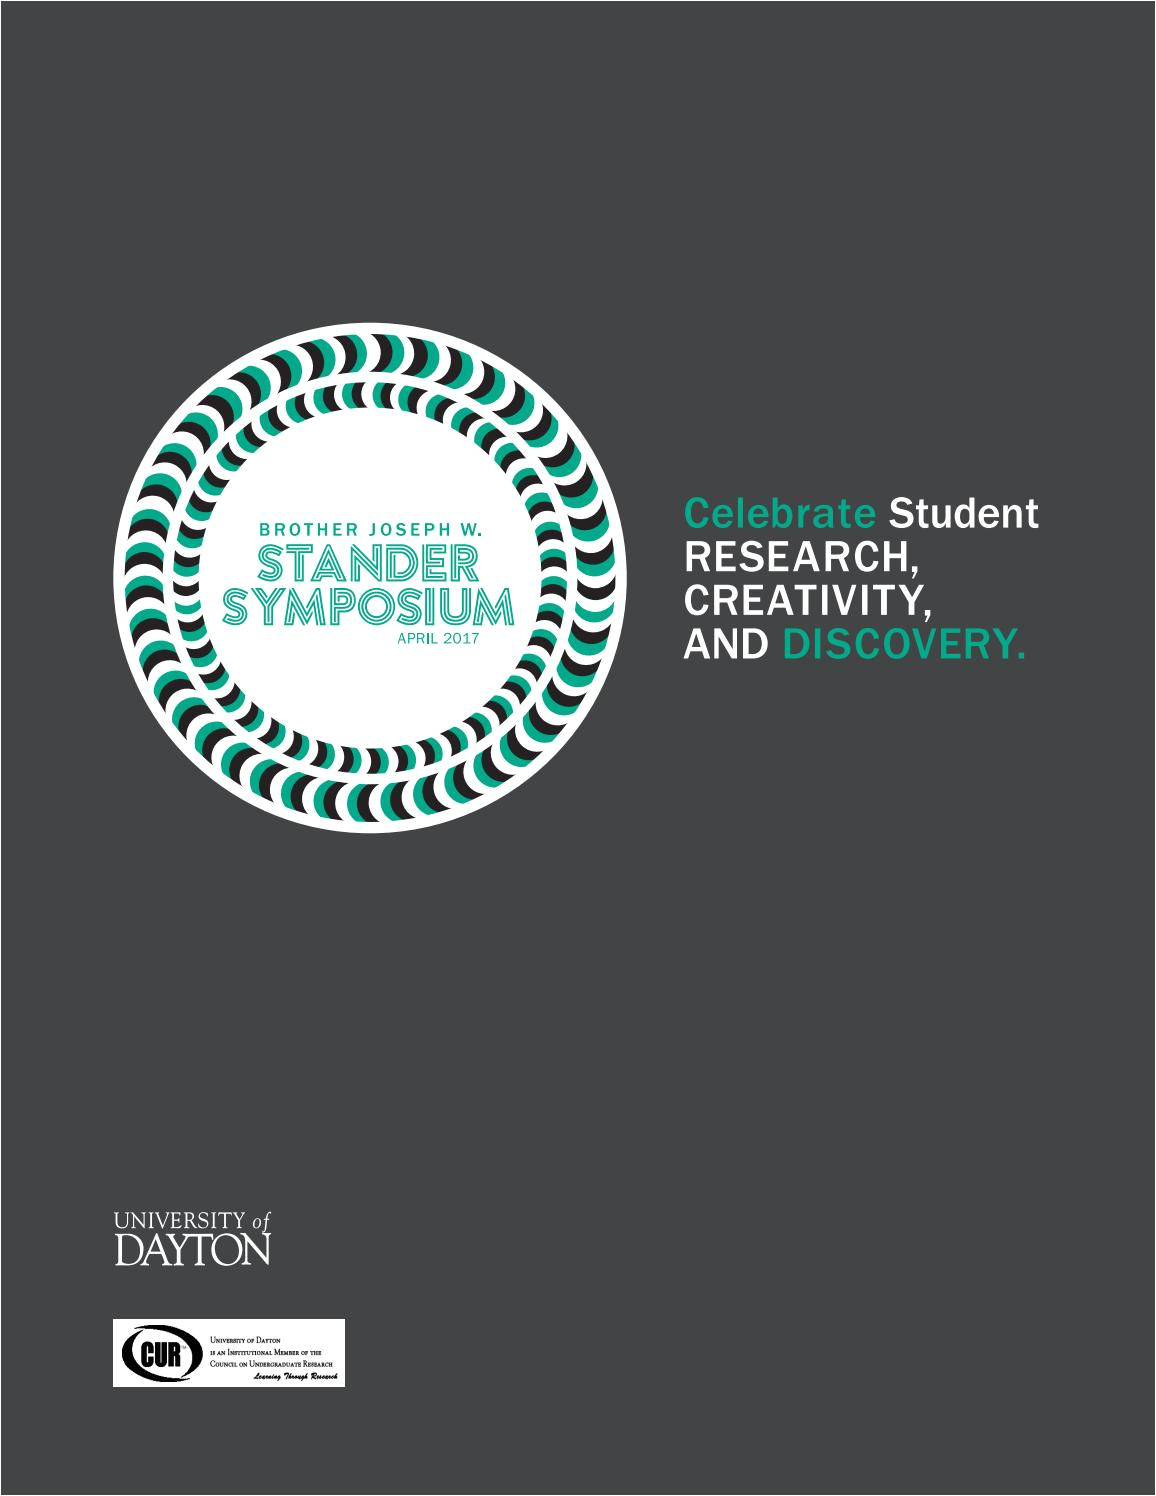 univ of dayton stander symposium 2017 abstract book by university of dayton stander symposium issuu